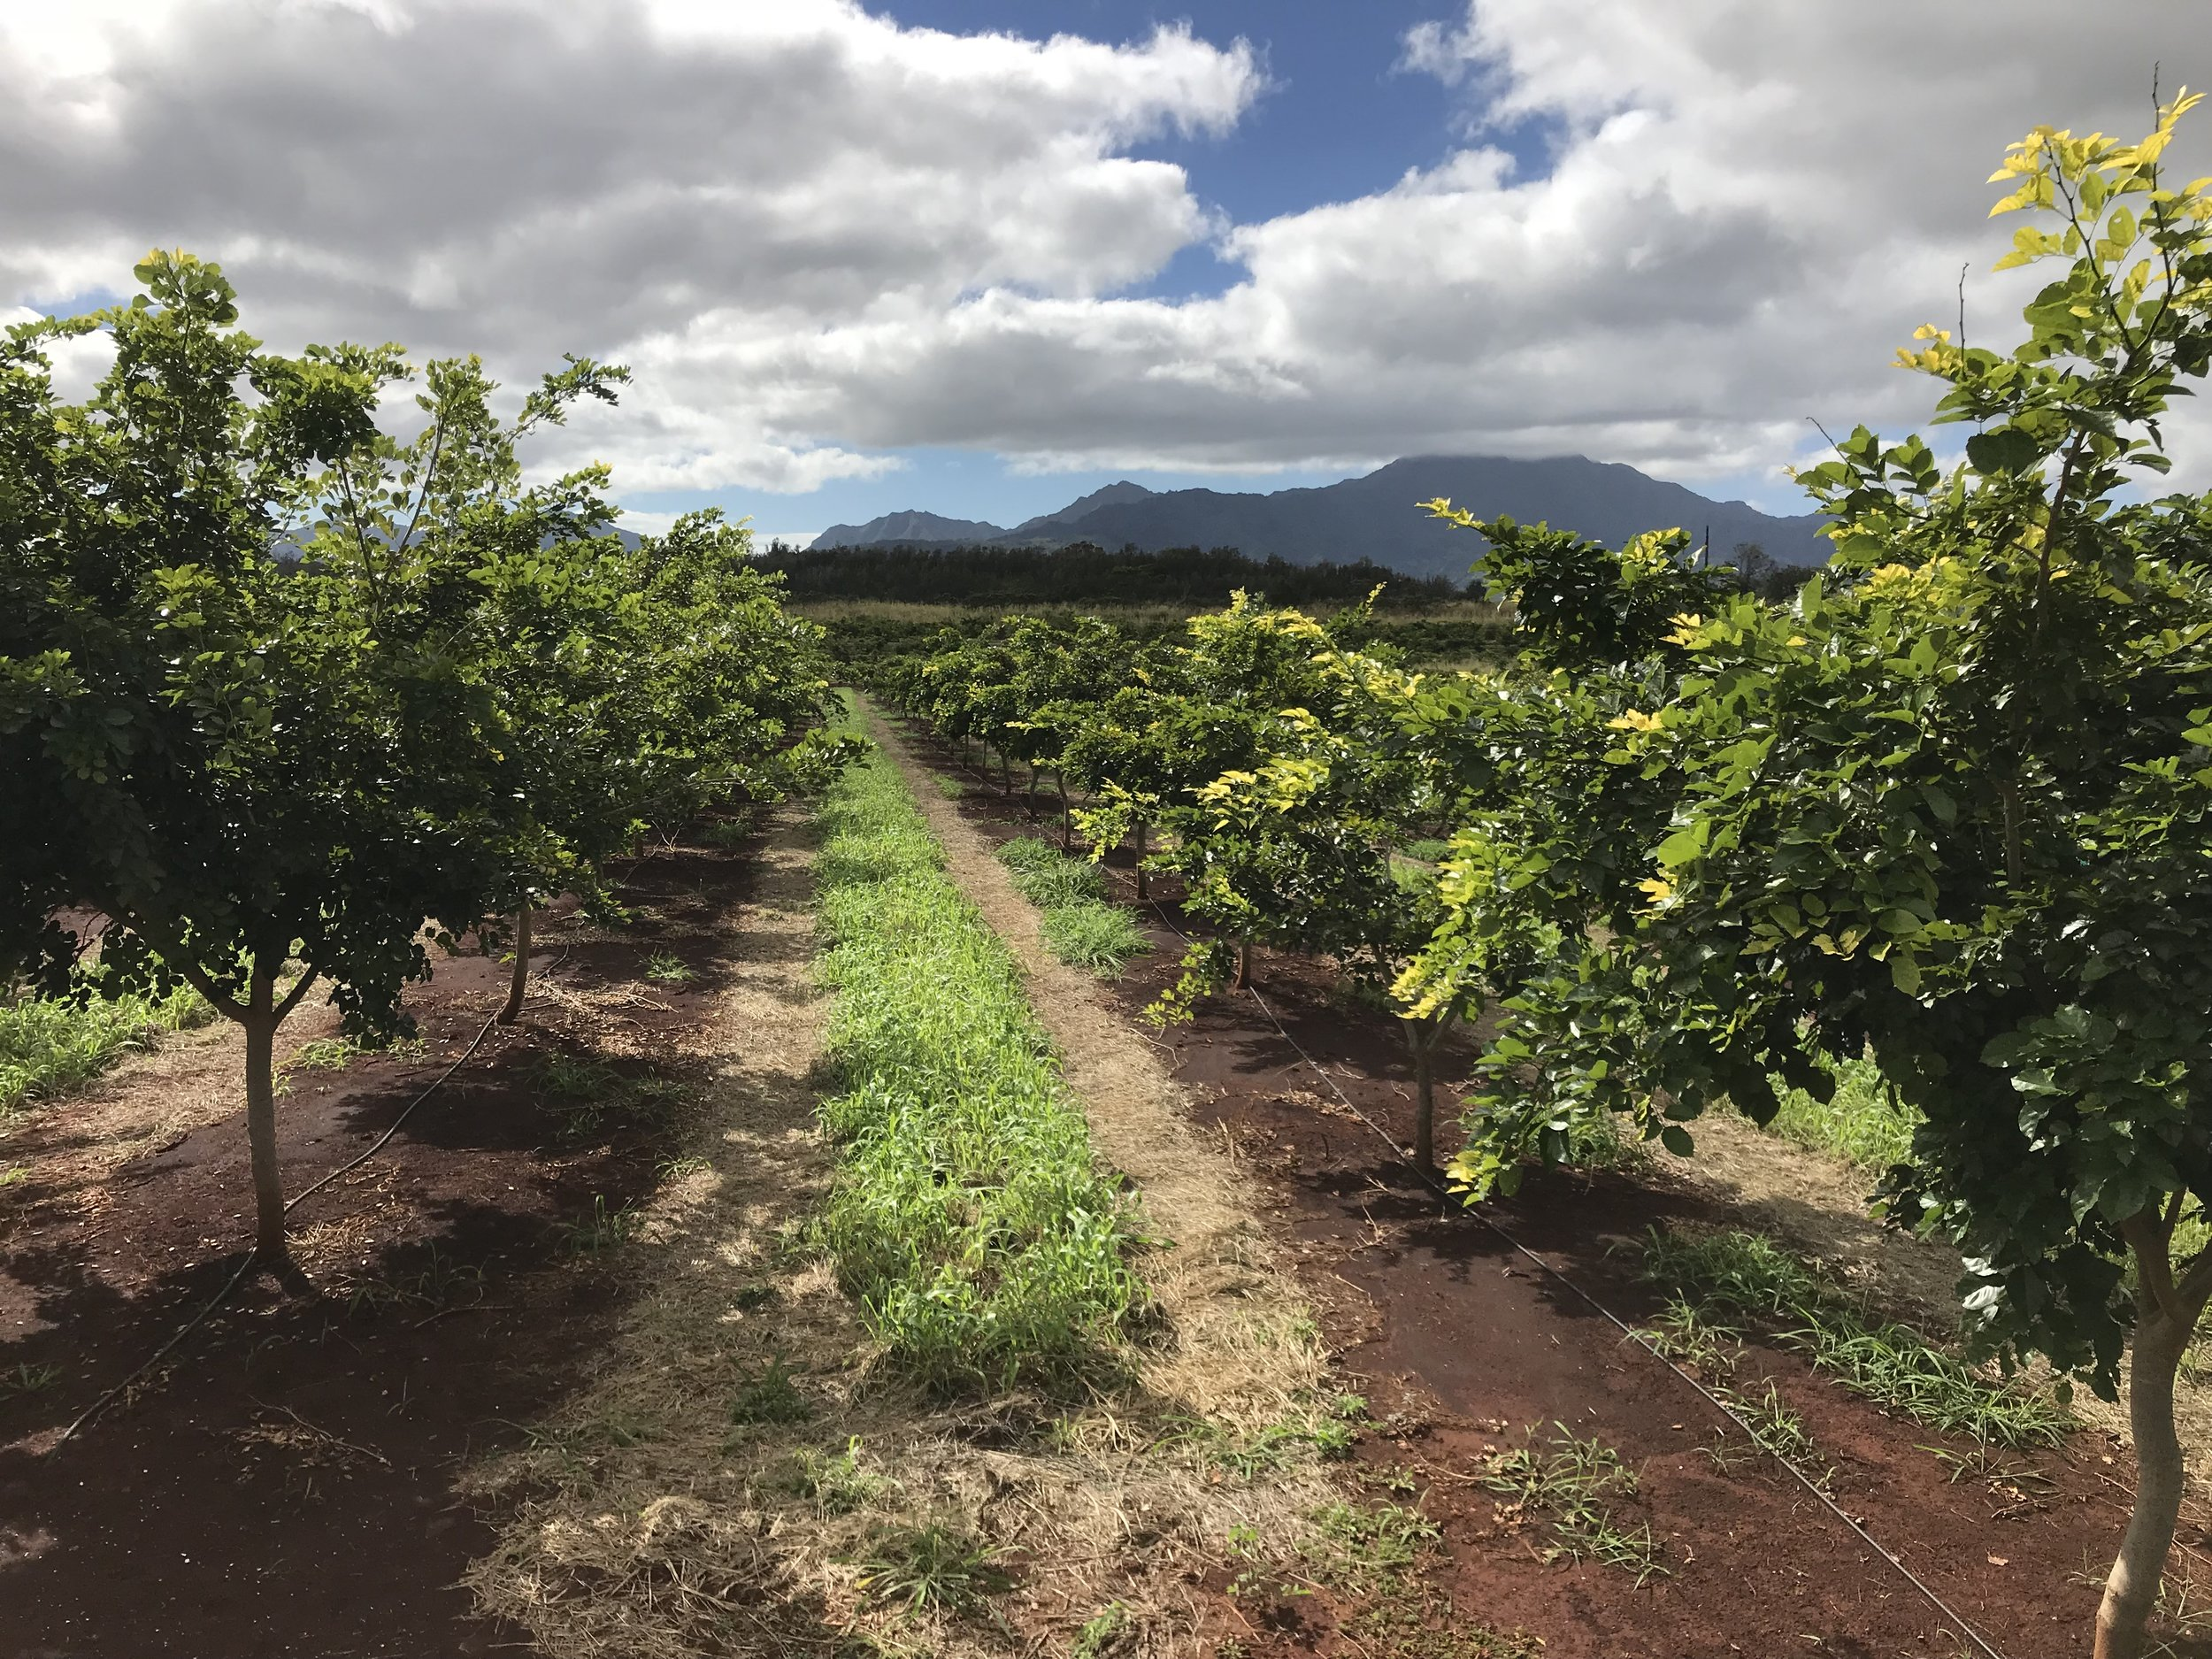 A pongamia orchard. Image courtesy of TerViva